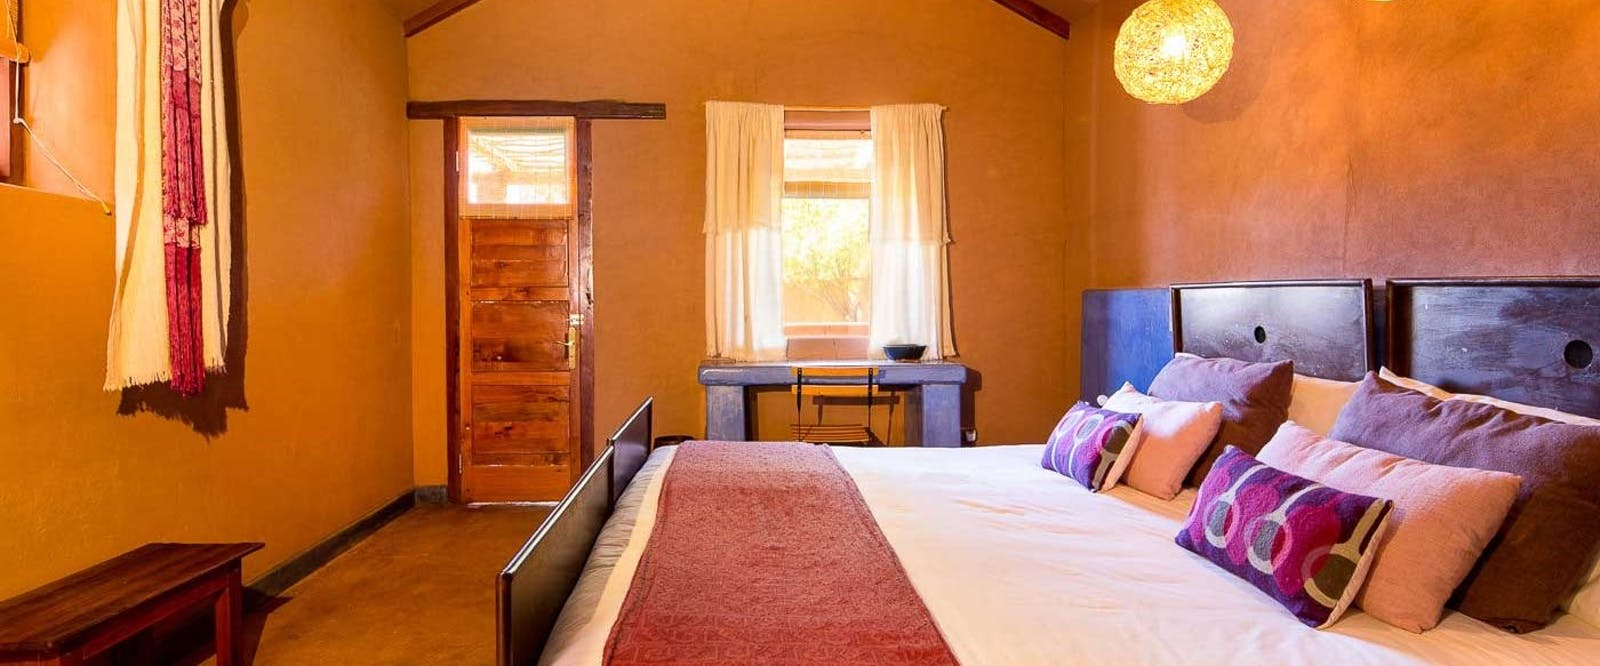 Bedroom, , Altiplanico, Chile